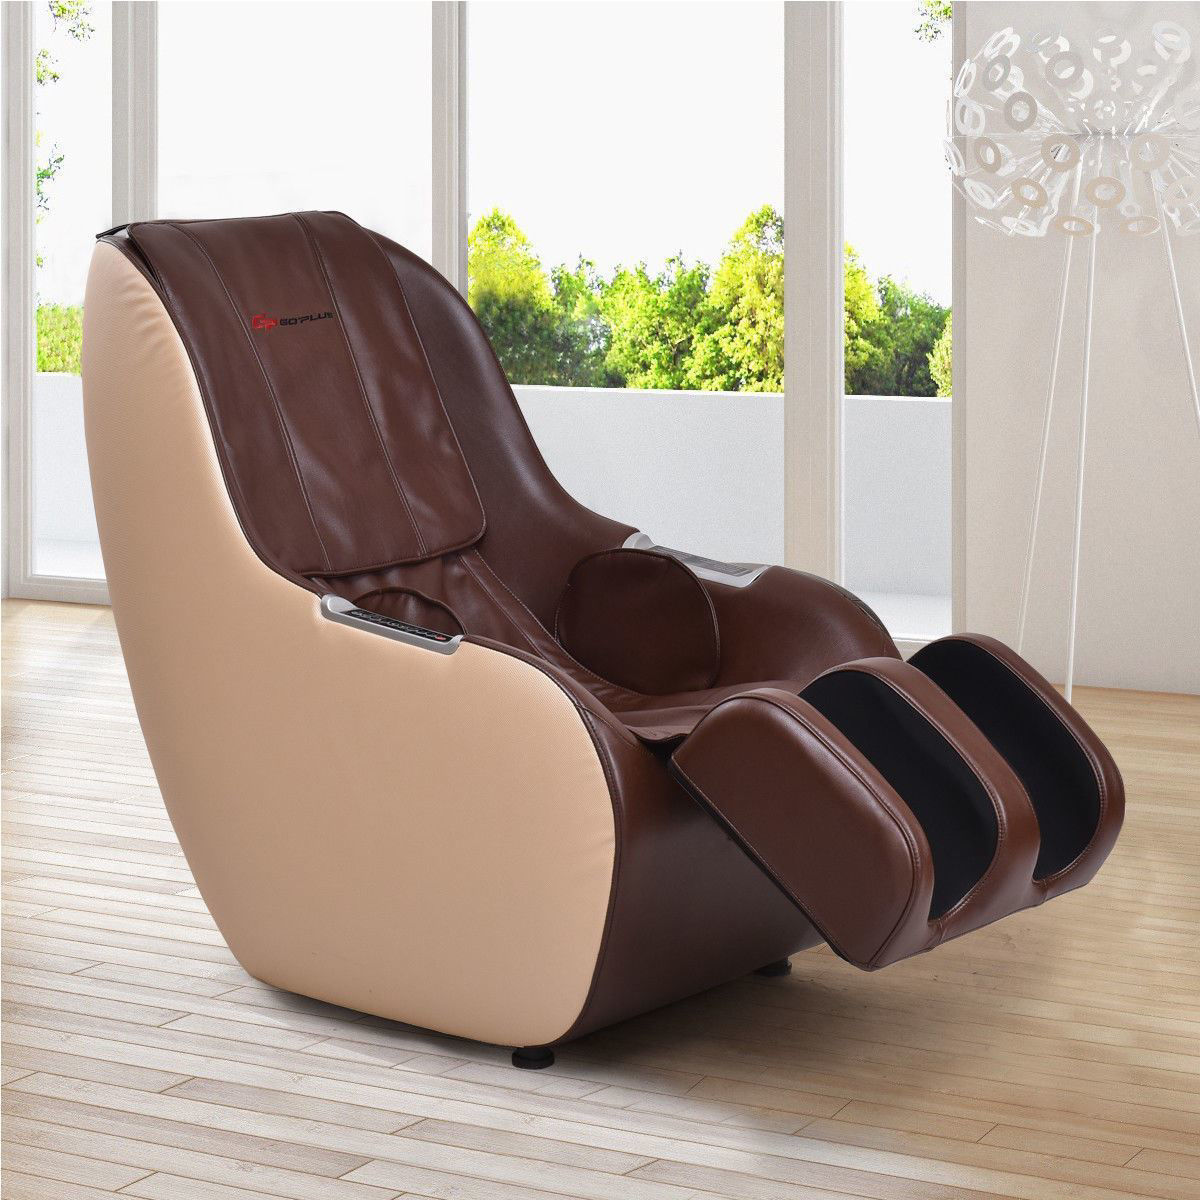 Picture of Full Body Massage Chair 3D Electric - Coffee